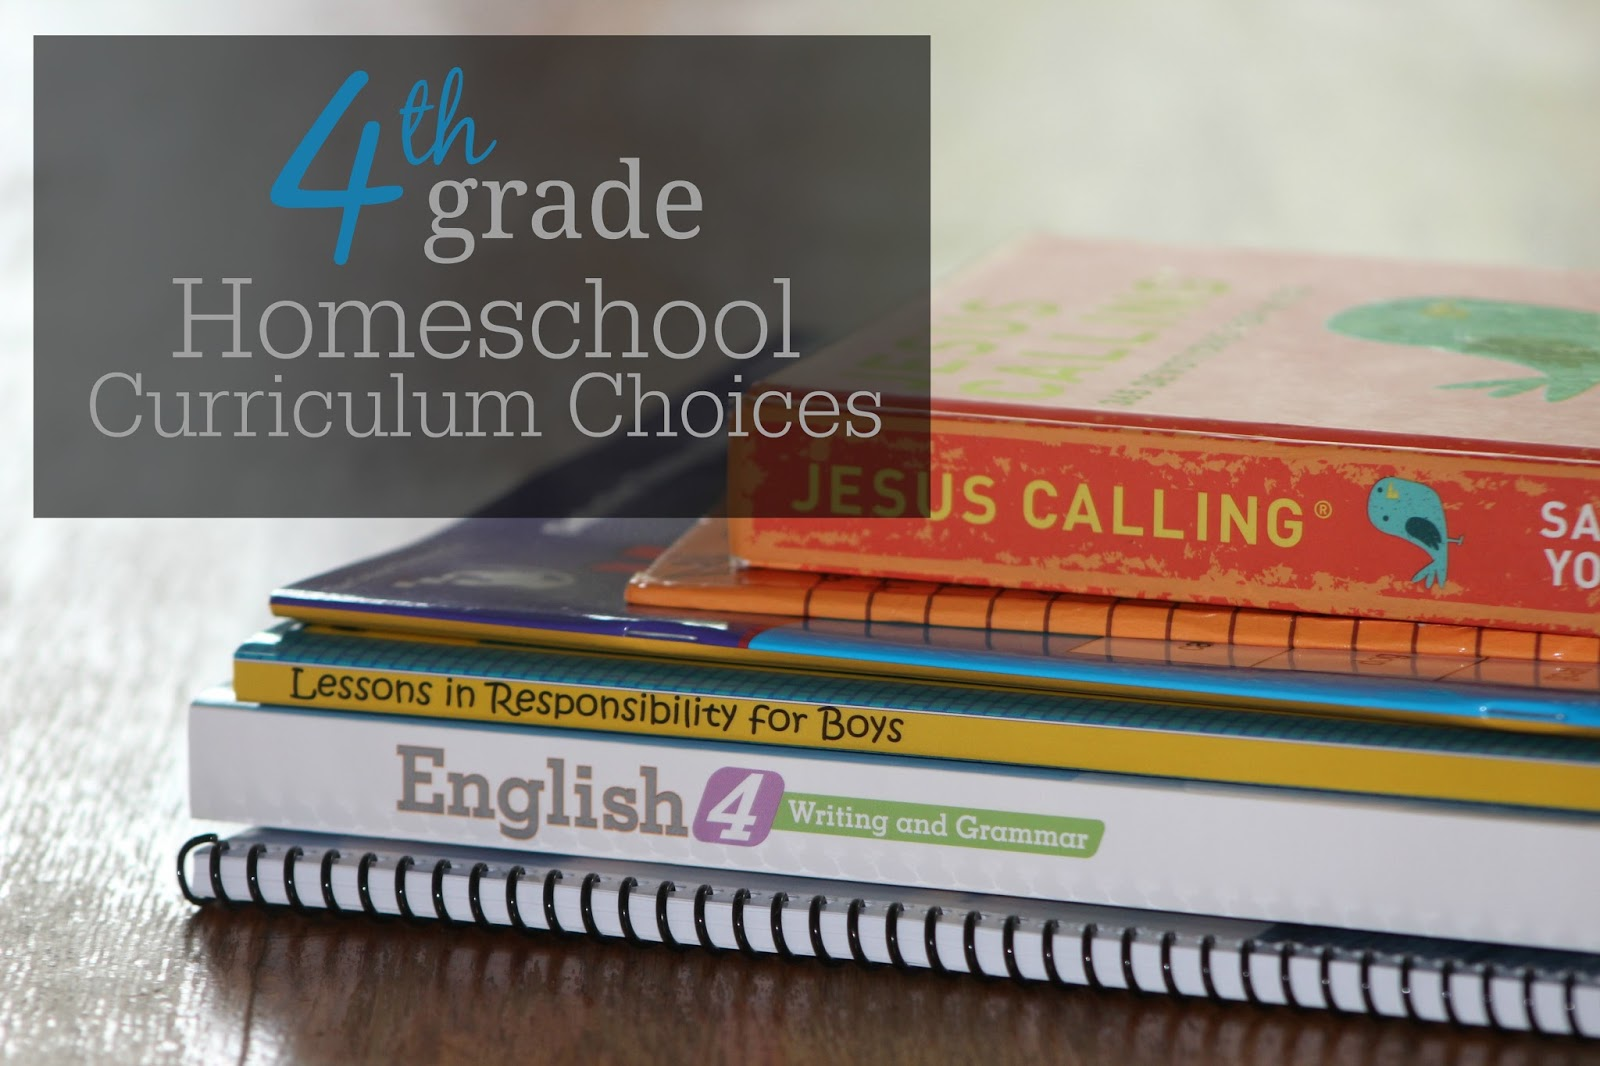 The Unlikely Homeschool 4th Grade Homeschool Curriculum Choices